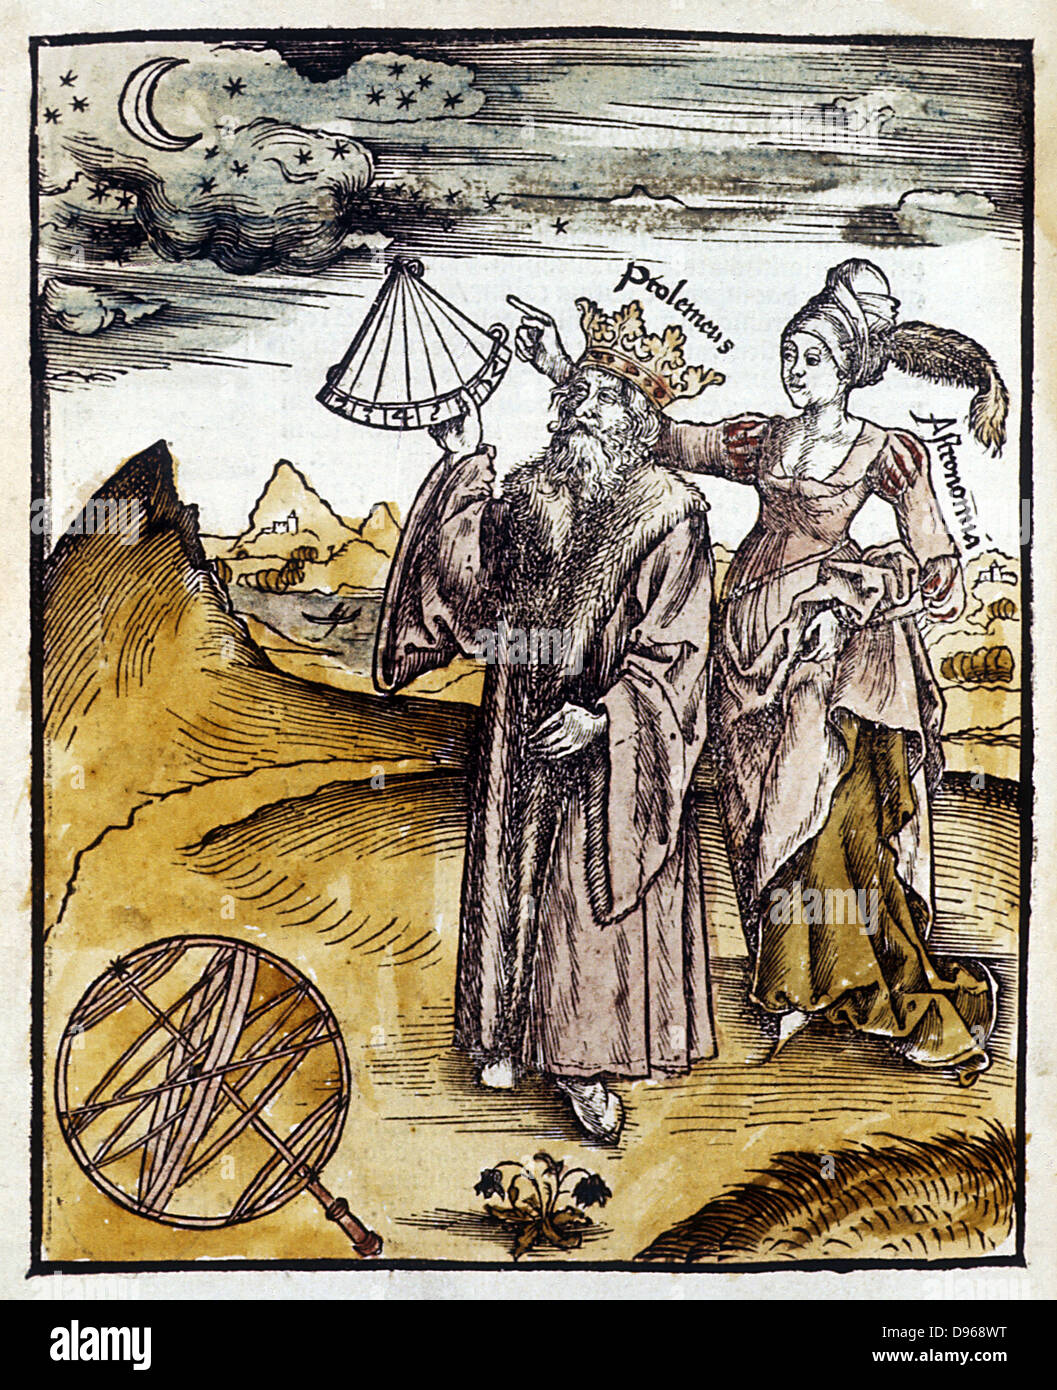 Ptolemy (Claudius of Ptolemaeus) active 150 AD, Alexandrian Greek astronomer and geographer, using quadrant to observe Stock Photo